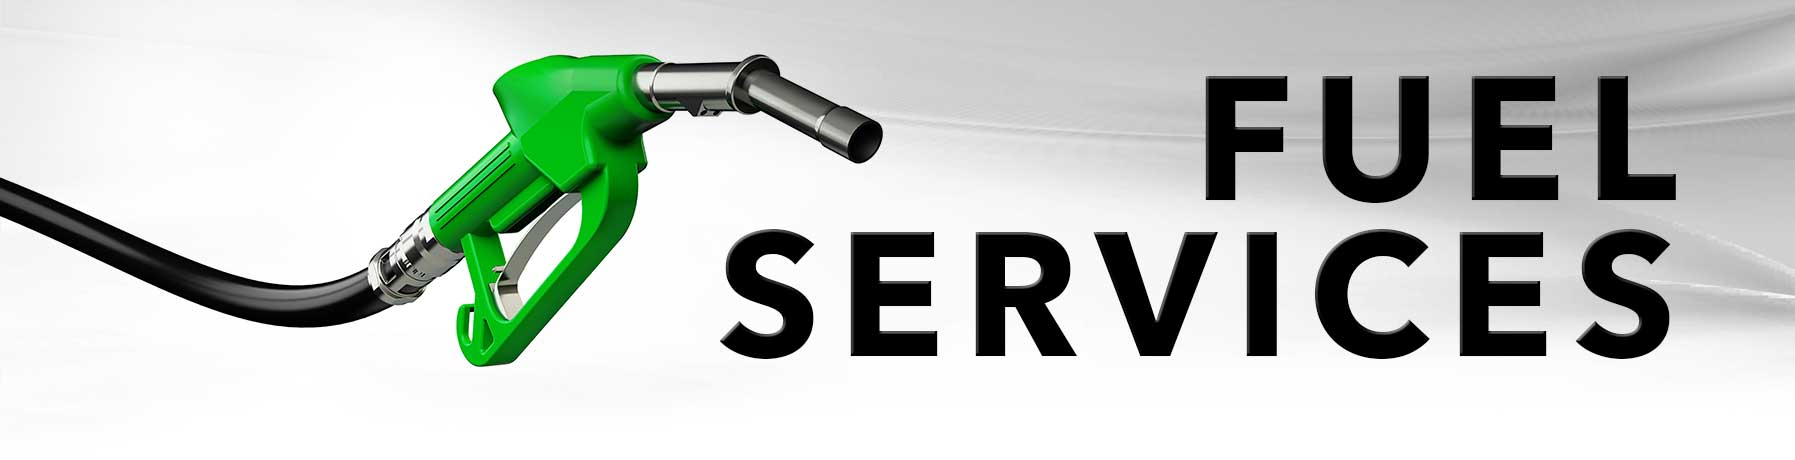 Fuel Service banner image with picture of fuel pump